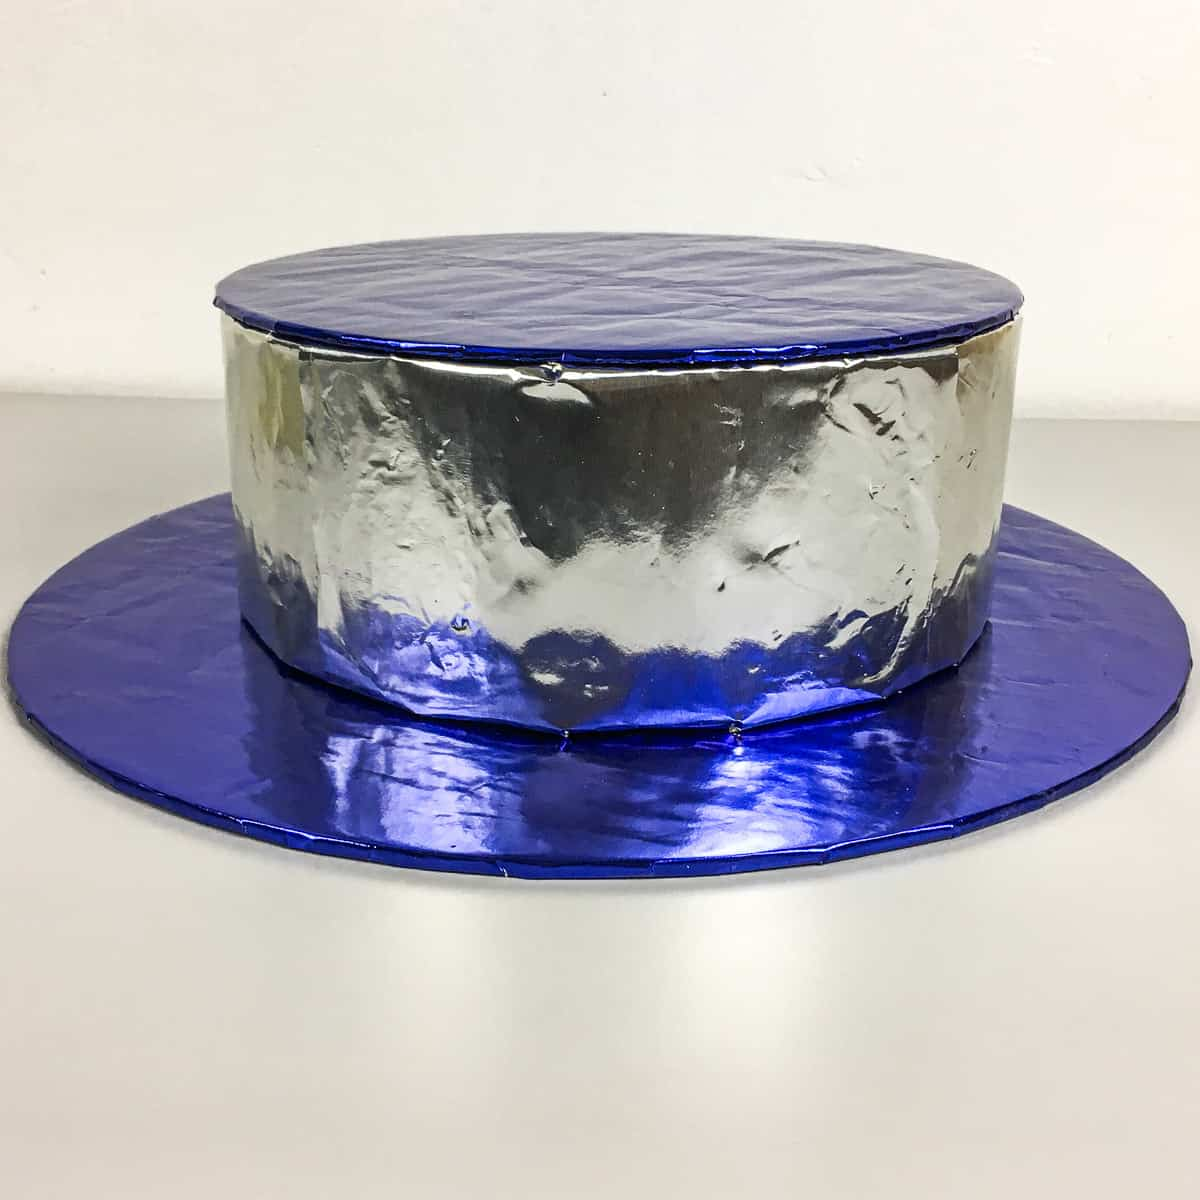 Bottom tier of a DIY cake stand in blue and silver